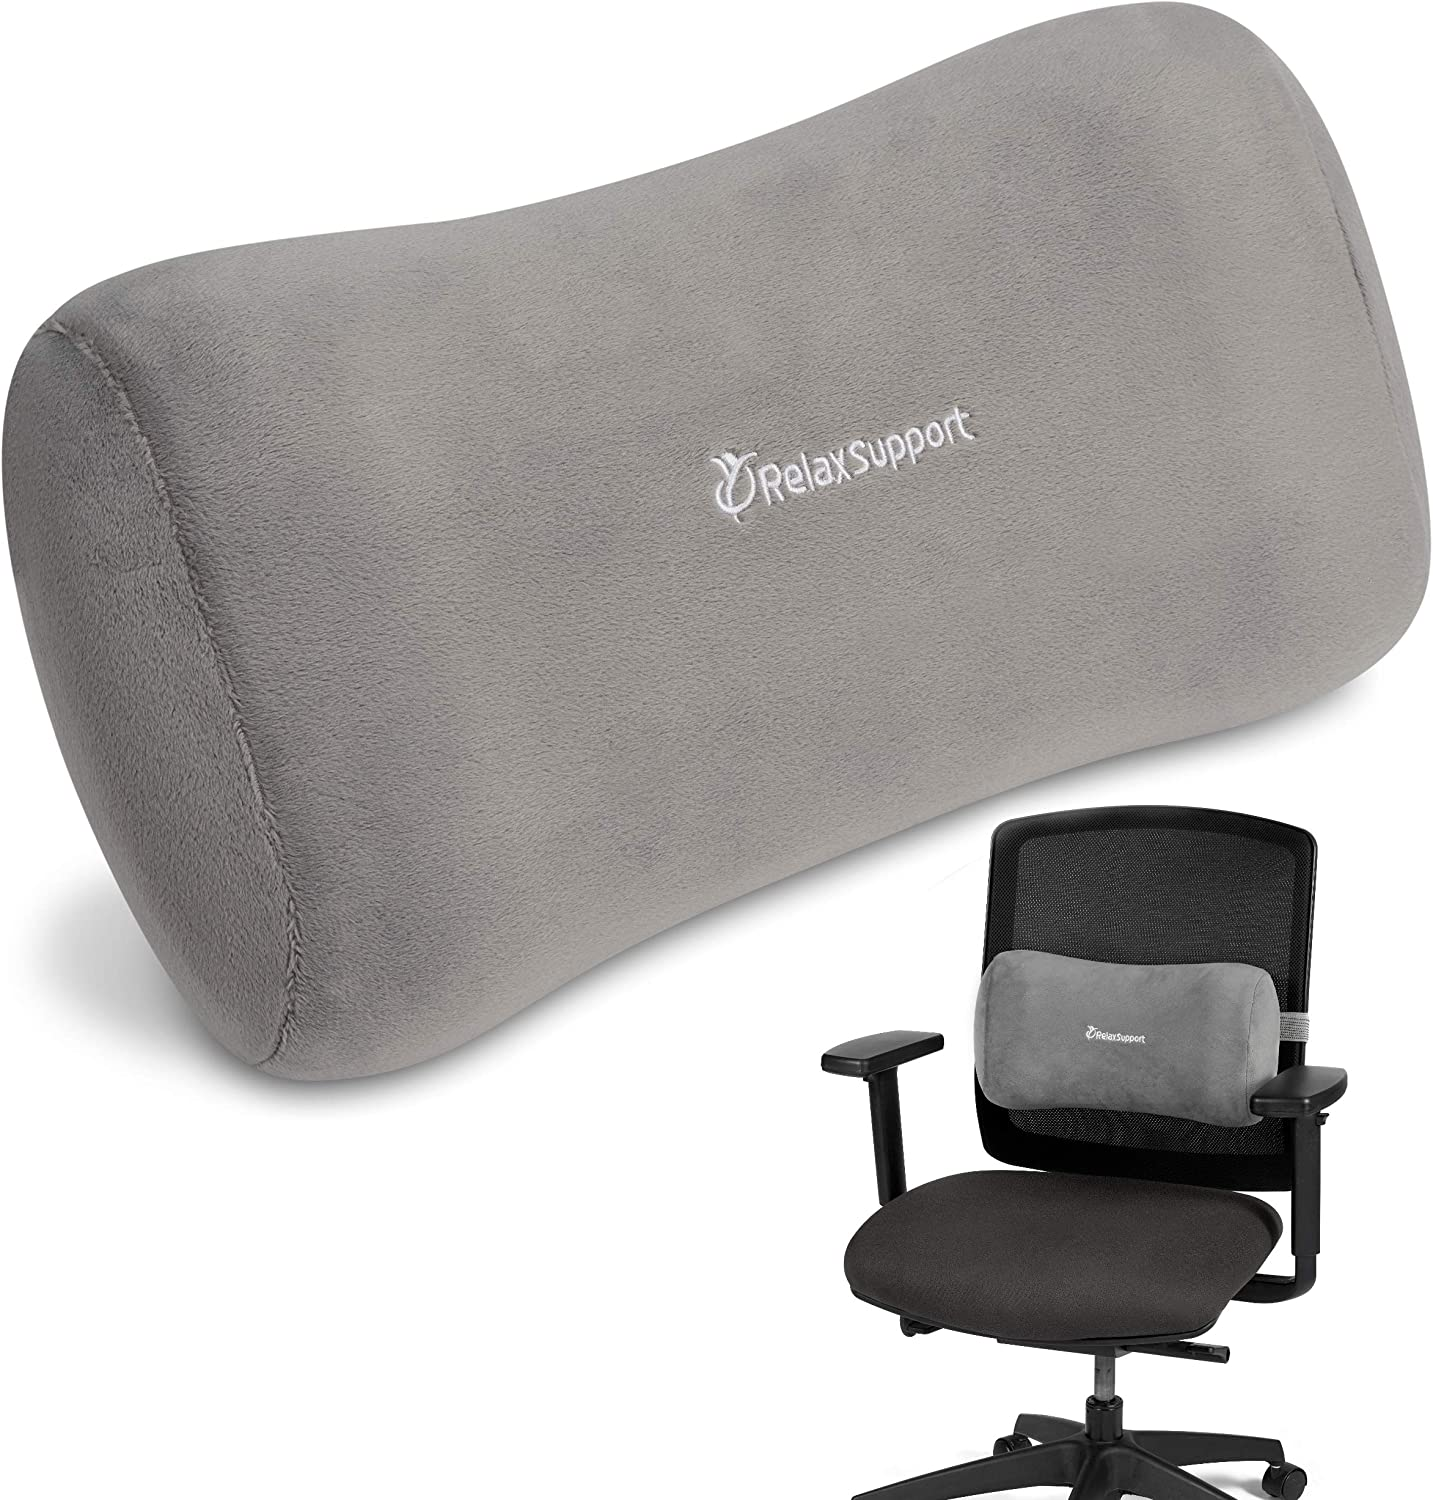 RELAX SUPPORT Office Chair Back Support Pillow RS11-X Lumbar Cushion for Upper and Lower Back Pain Uses Special Patented Technology Has Unique Lateral Convex Orthopedic Shape for a Pain Free Back